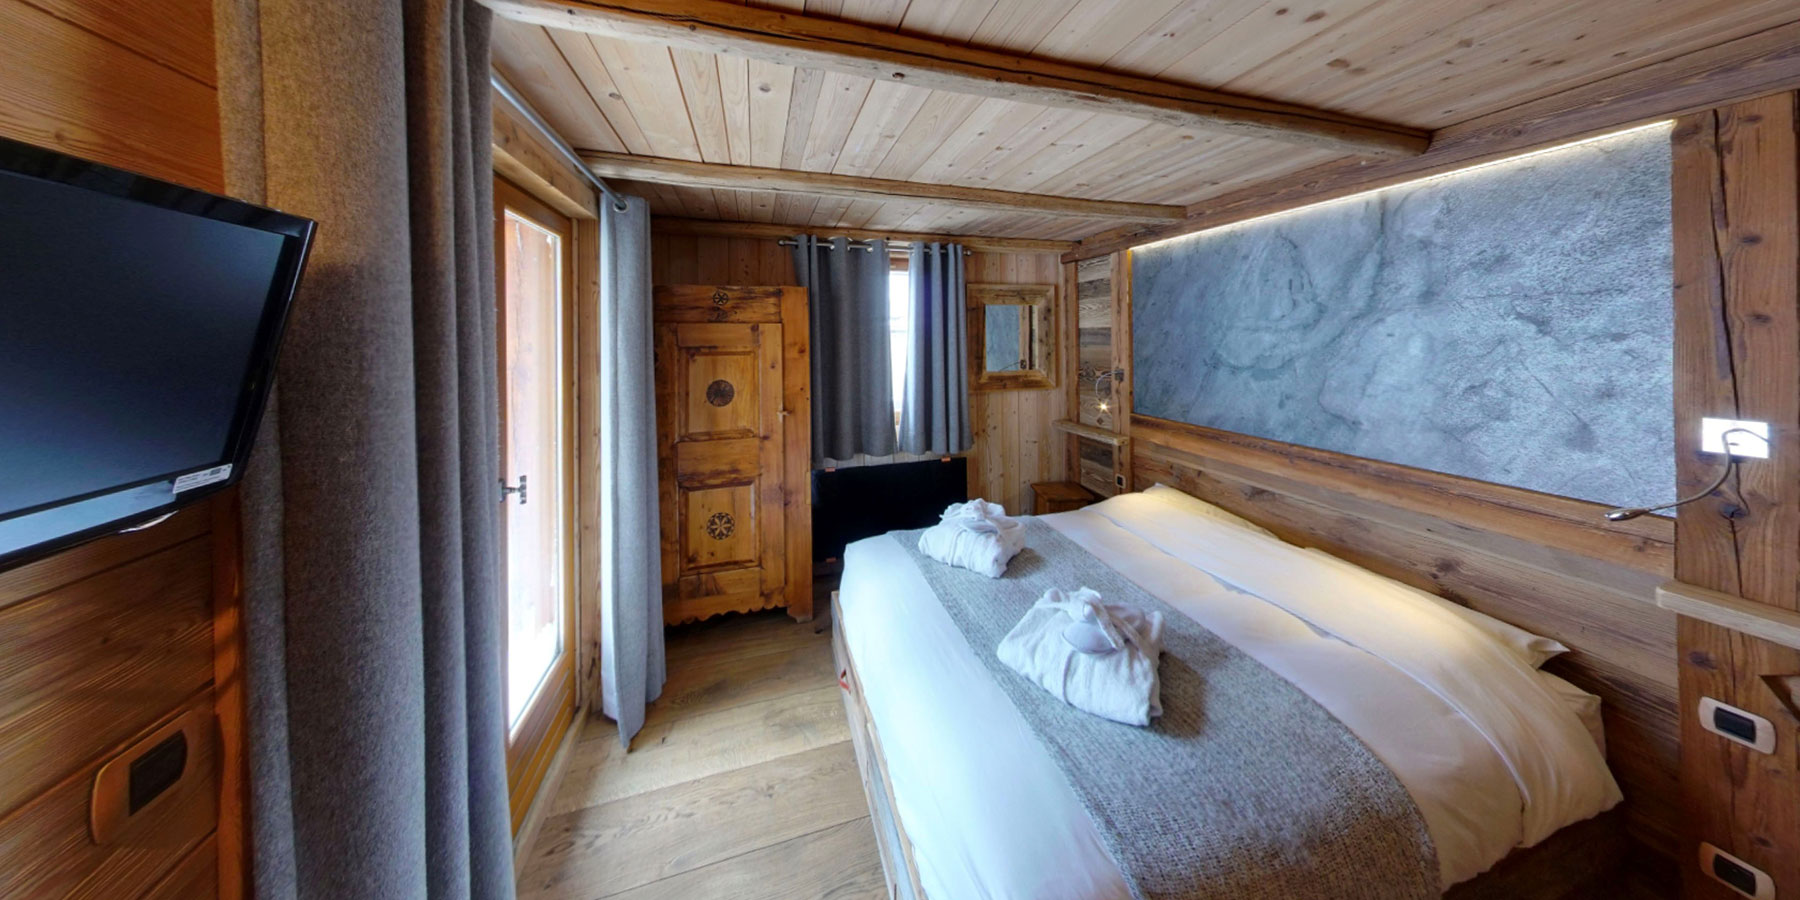 6 confortable bedrooms with en-suite bathrooms